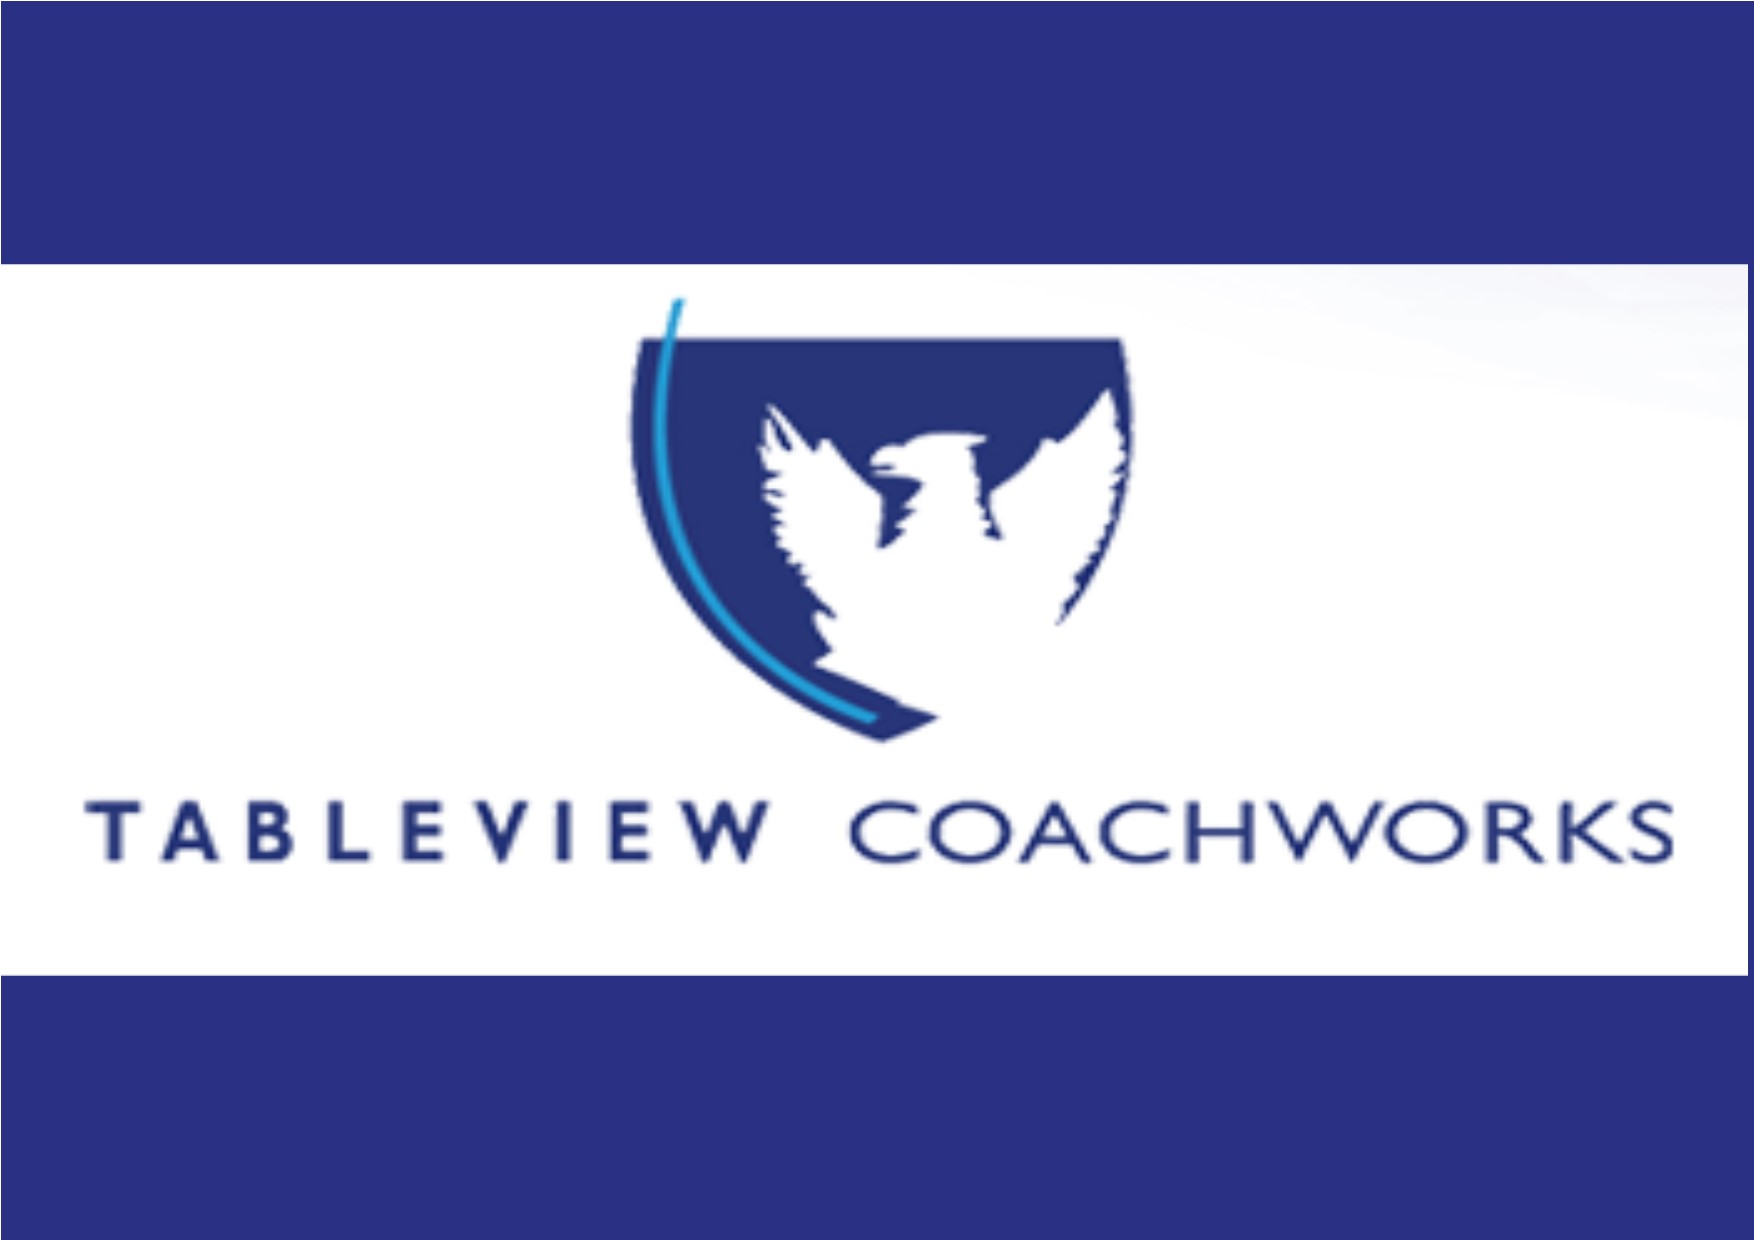 Logo of Tableview Coachworks